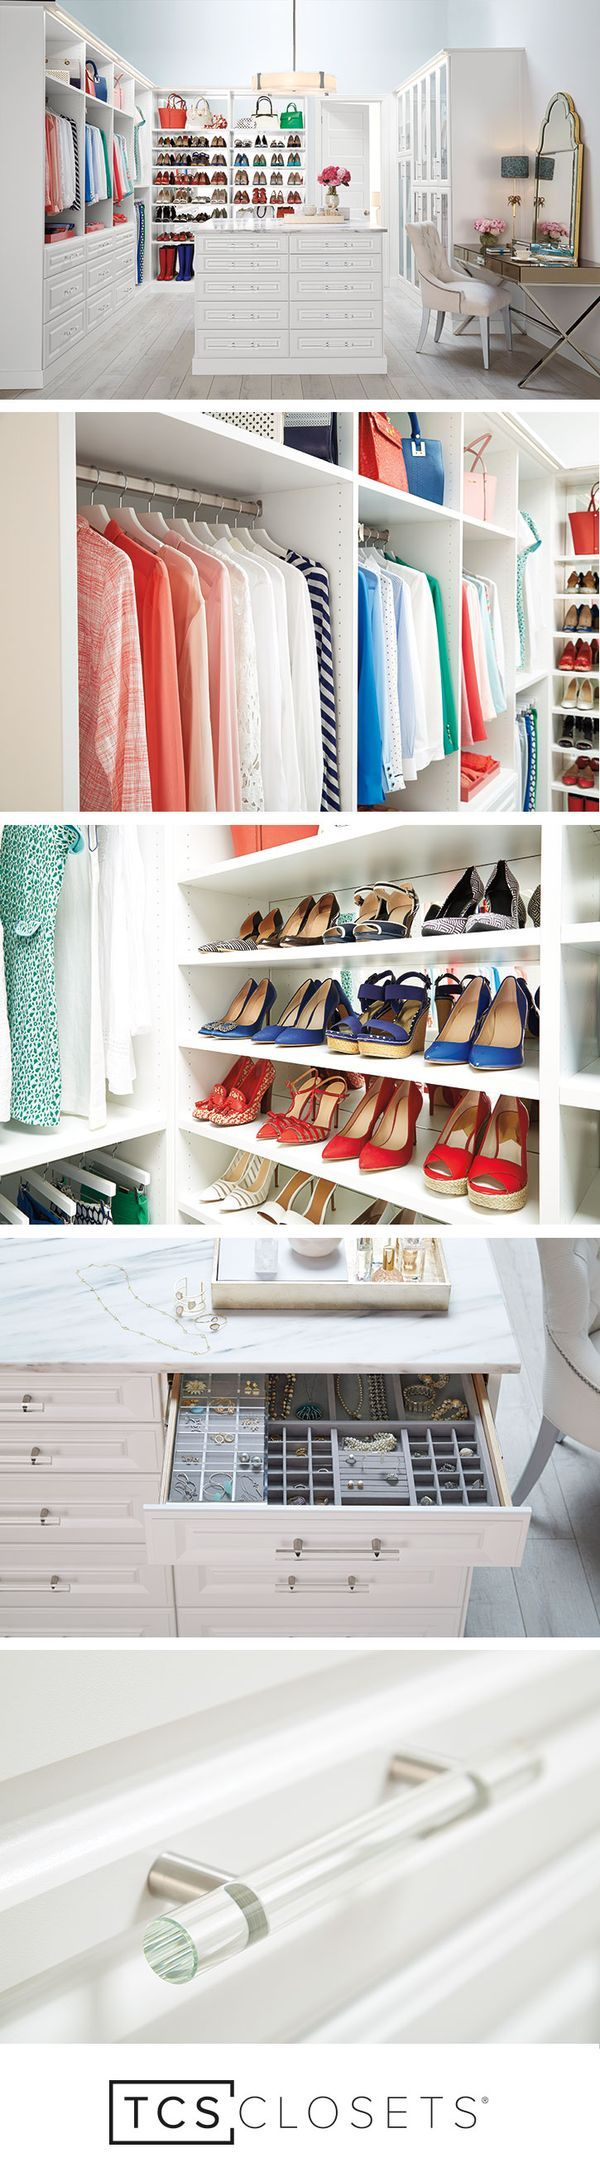 Design, Customize And Have Your Dream Closet Installed With TCS Closets By  The Container Store. TCS Closets Are Luxury Custom Walk In Closets Staged  And ...